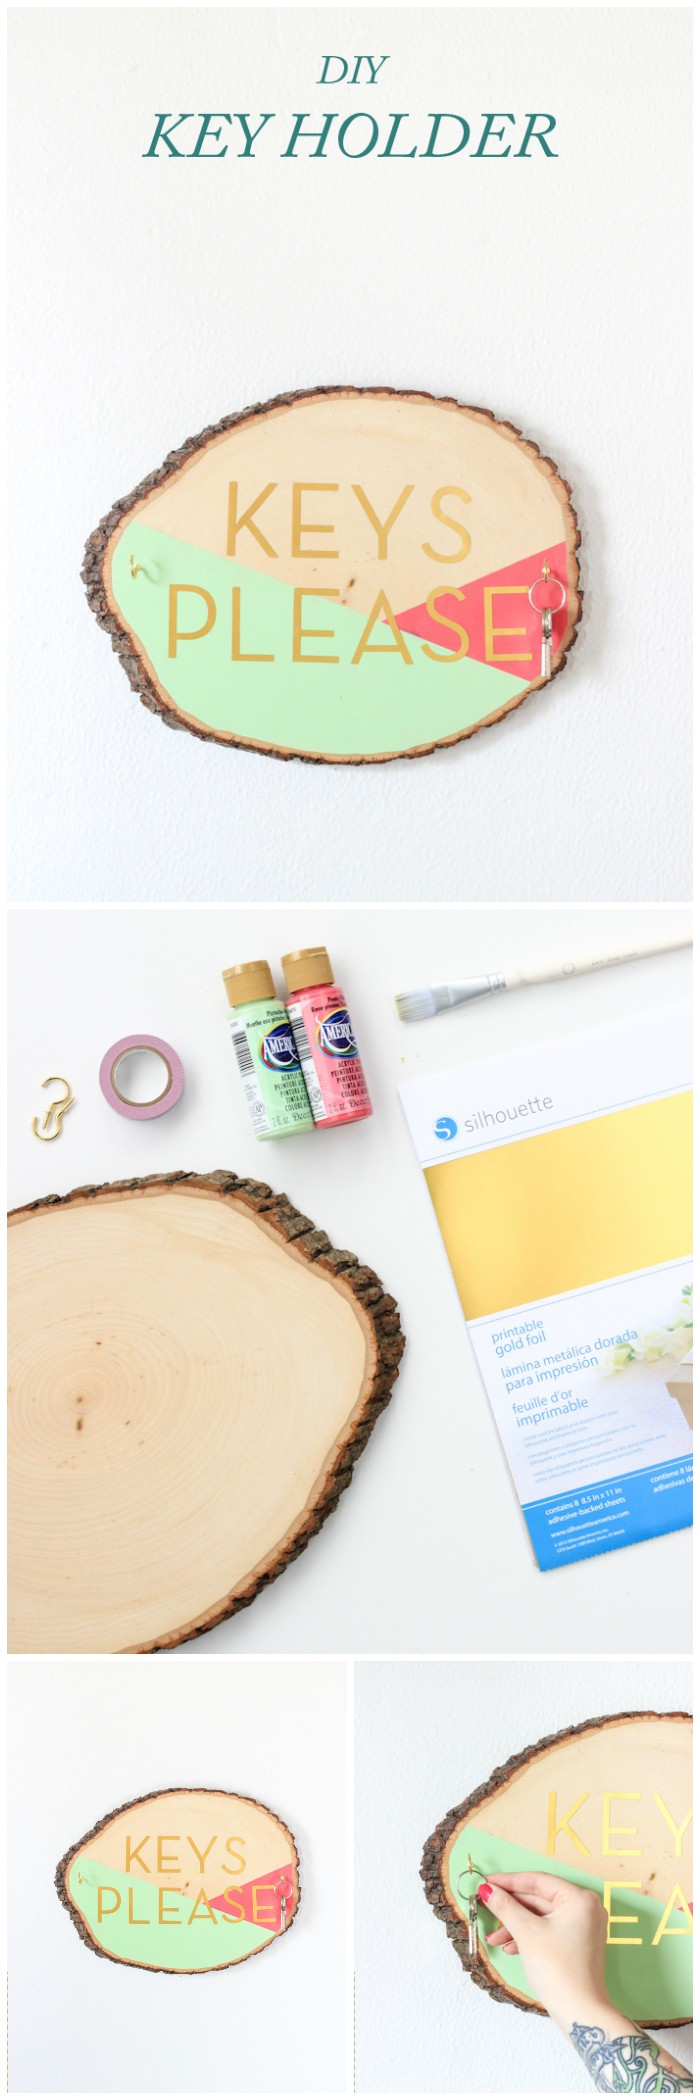 DIY Wooden Slab Key Holder Cheap DIY Projects For Your Home Decoration